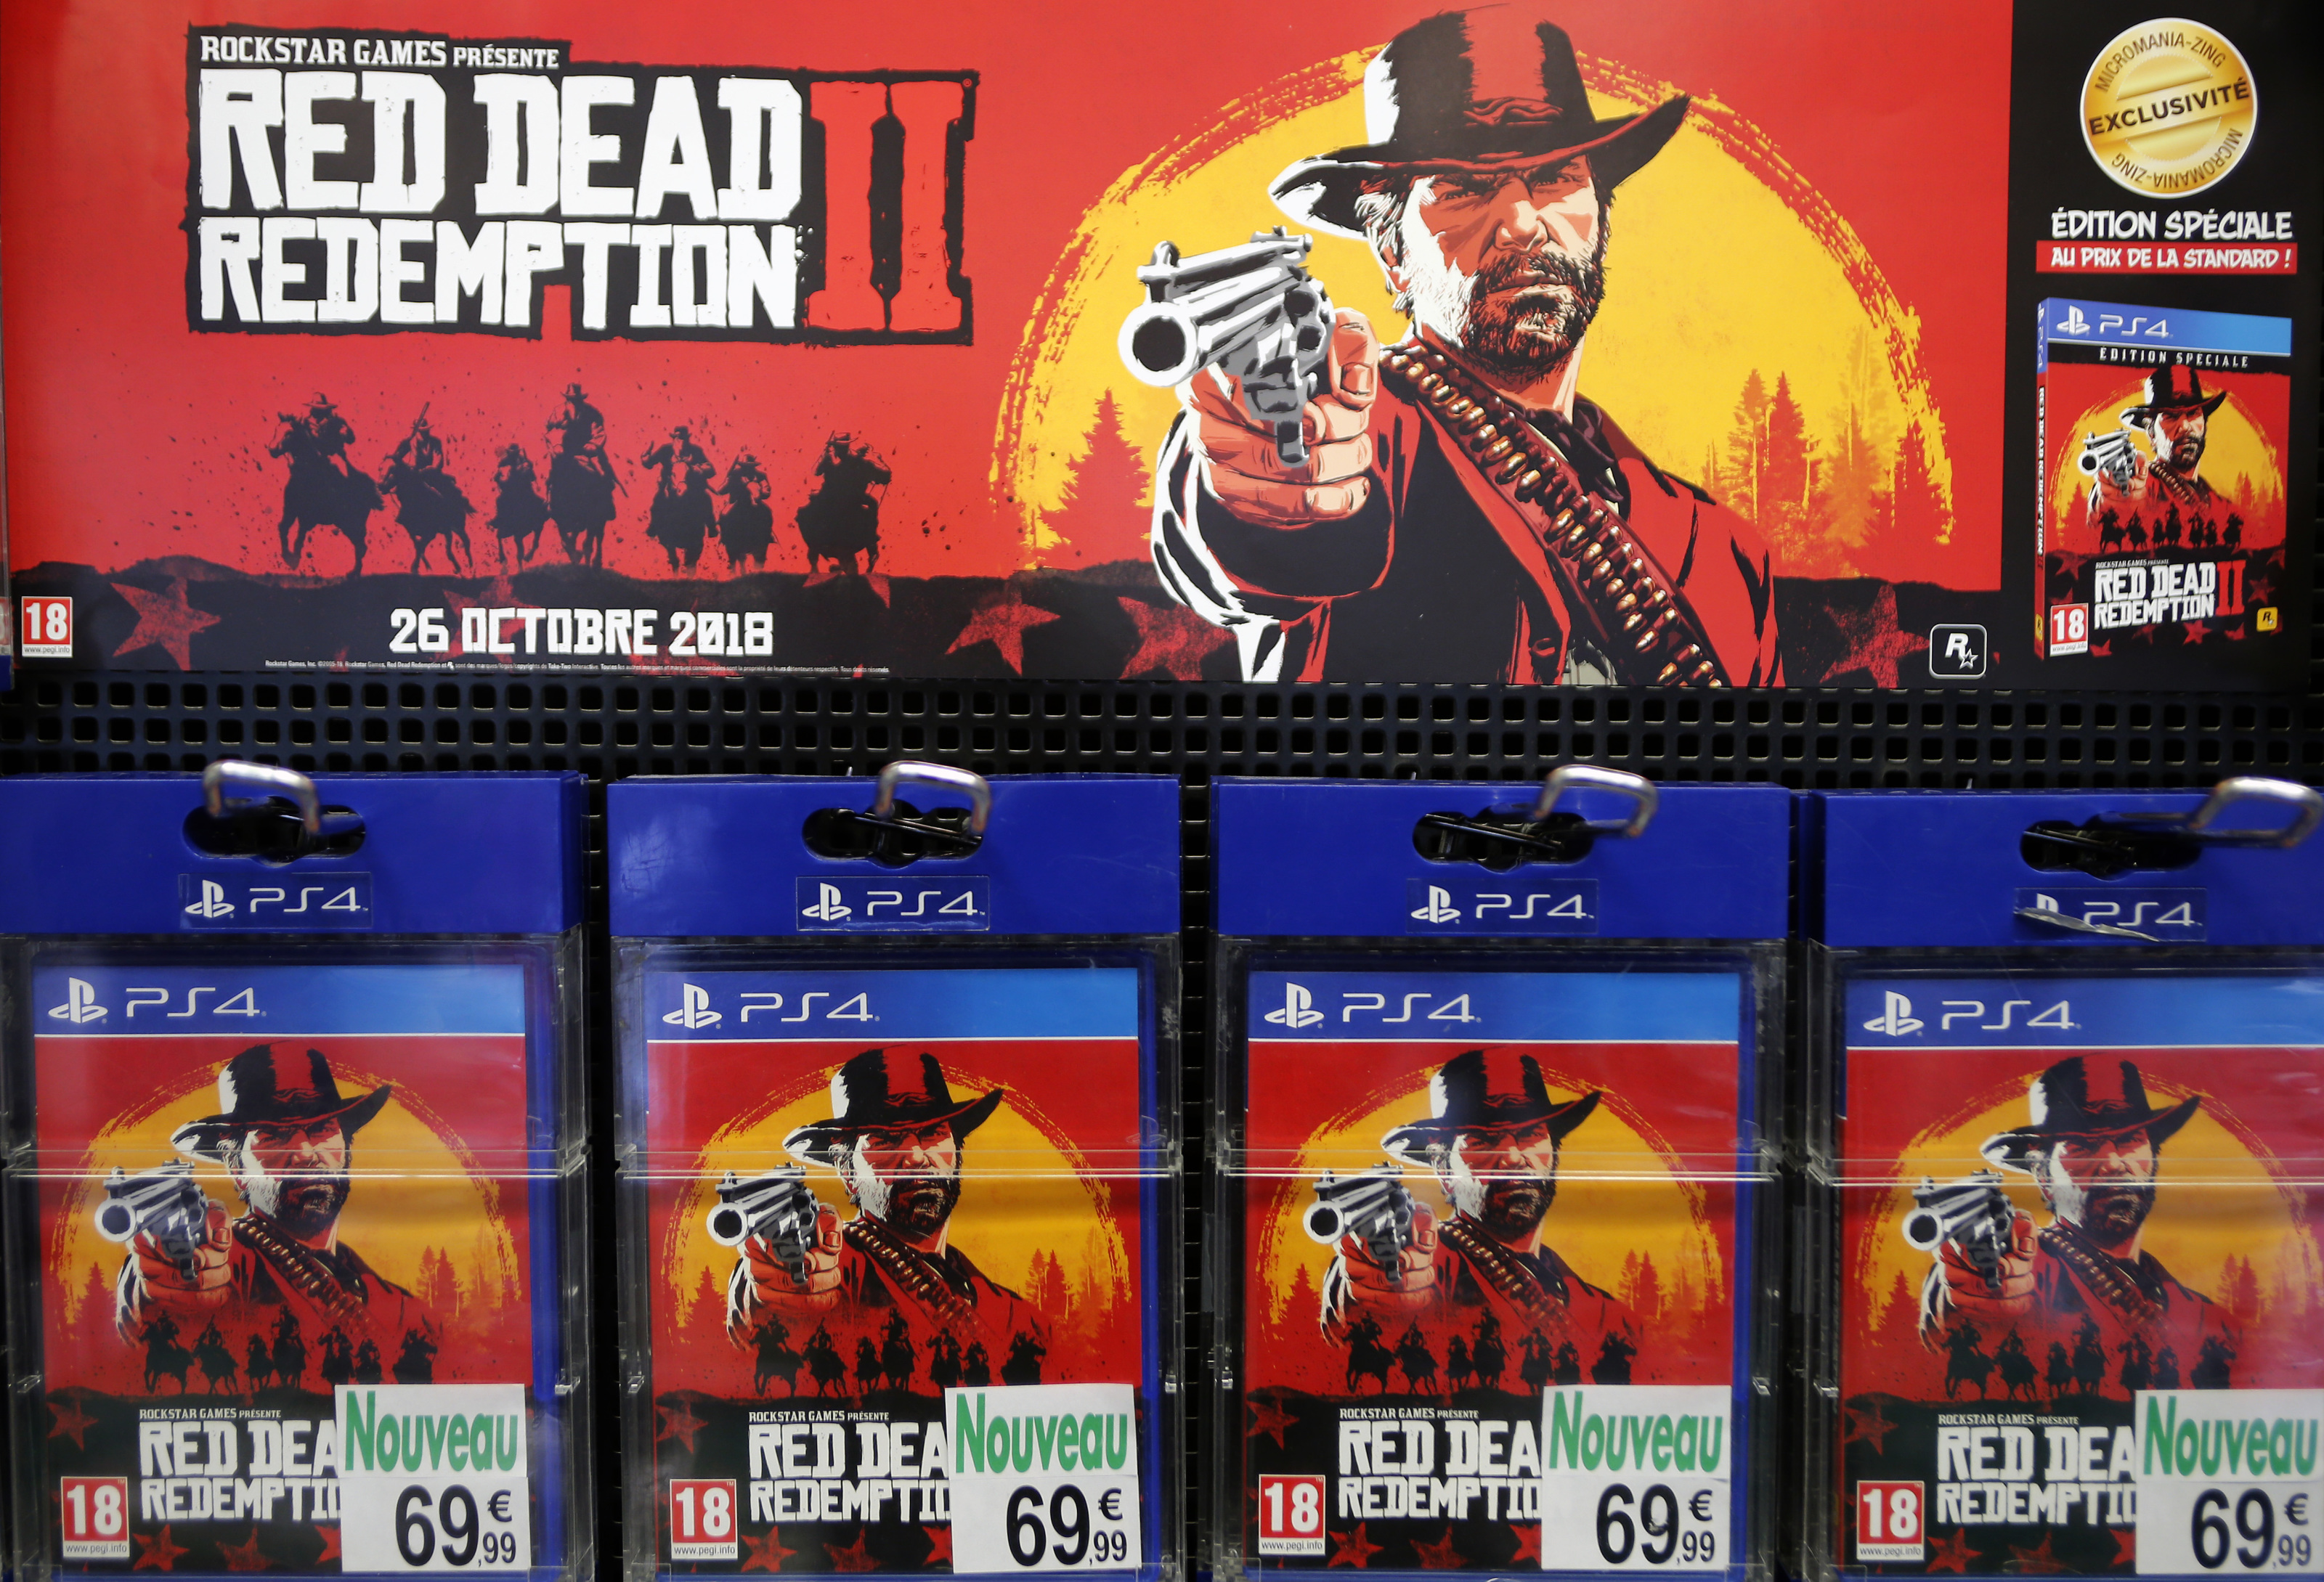 Red Dead Redemption 2's Hot Coffee mod has been removed